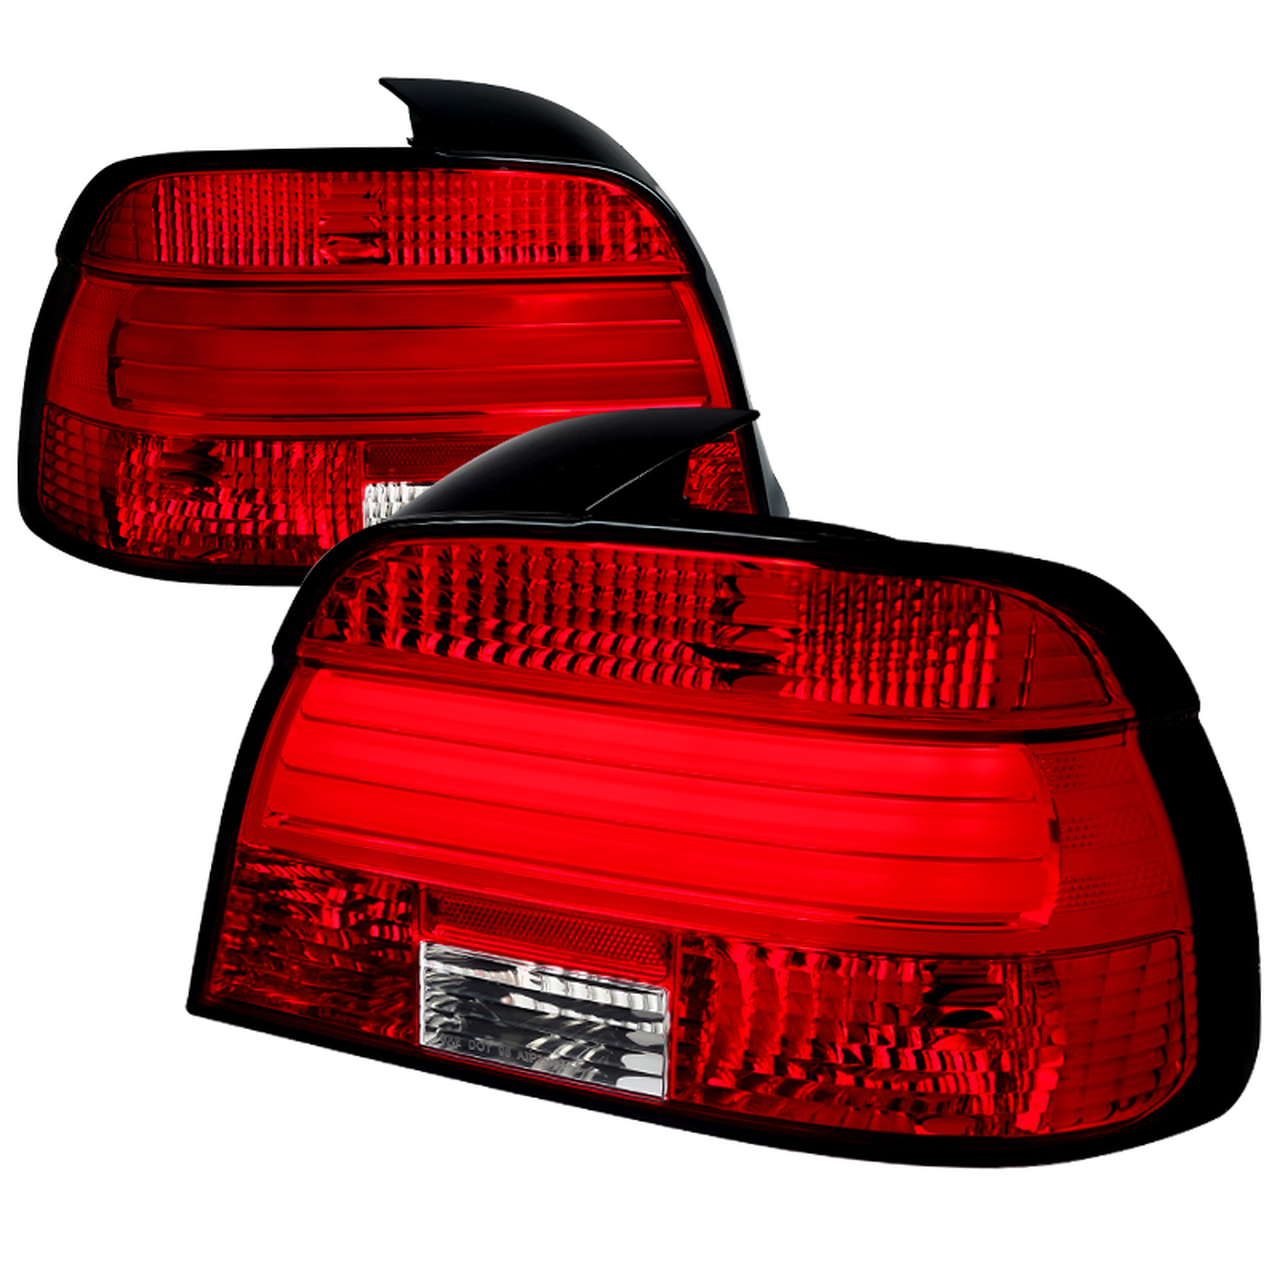 Spec-D Tuning Red LED Tail Lights - Spec-D Tuning LT-E3997RLED-TM